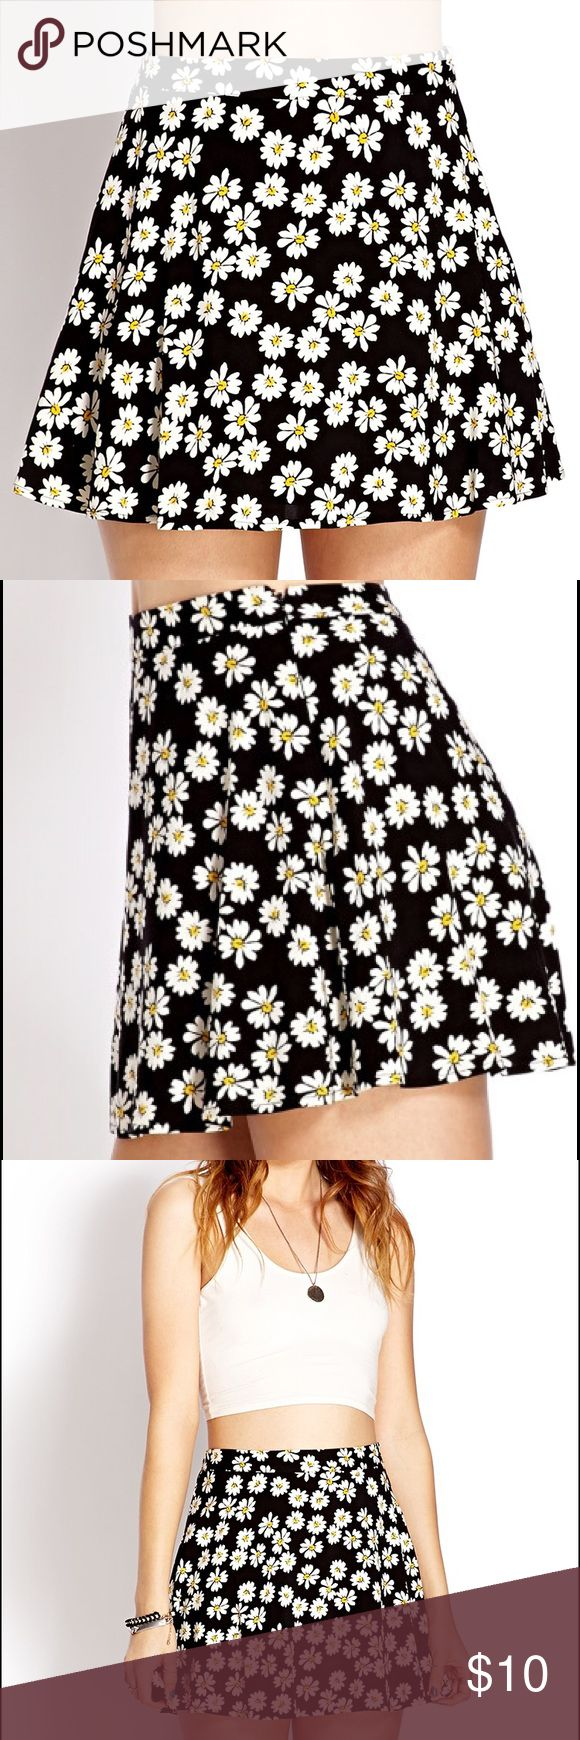 NEW Forever 21 Daisy Skirt New super cute Daisy skirt! Perfect for the summer & in the winter you can wear it with tights! Forever 21 Skirts Circle & Skater